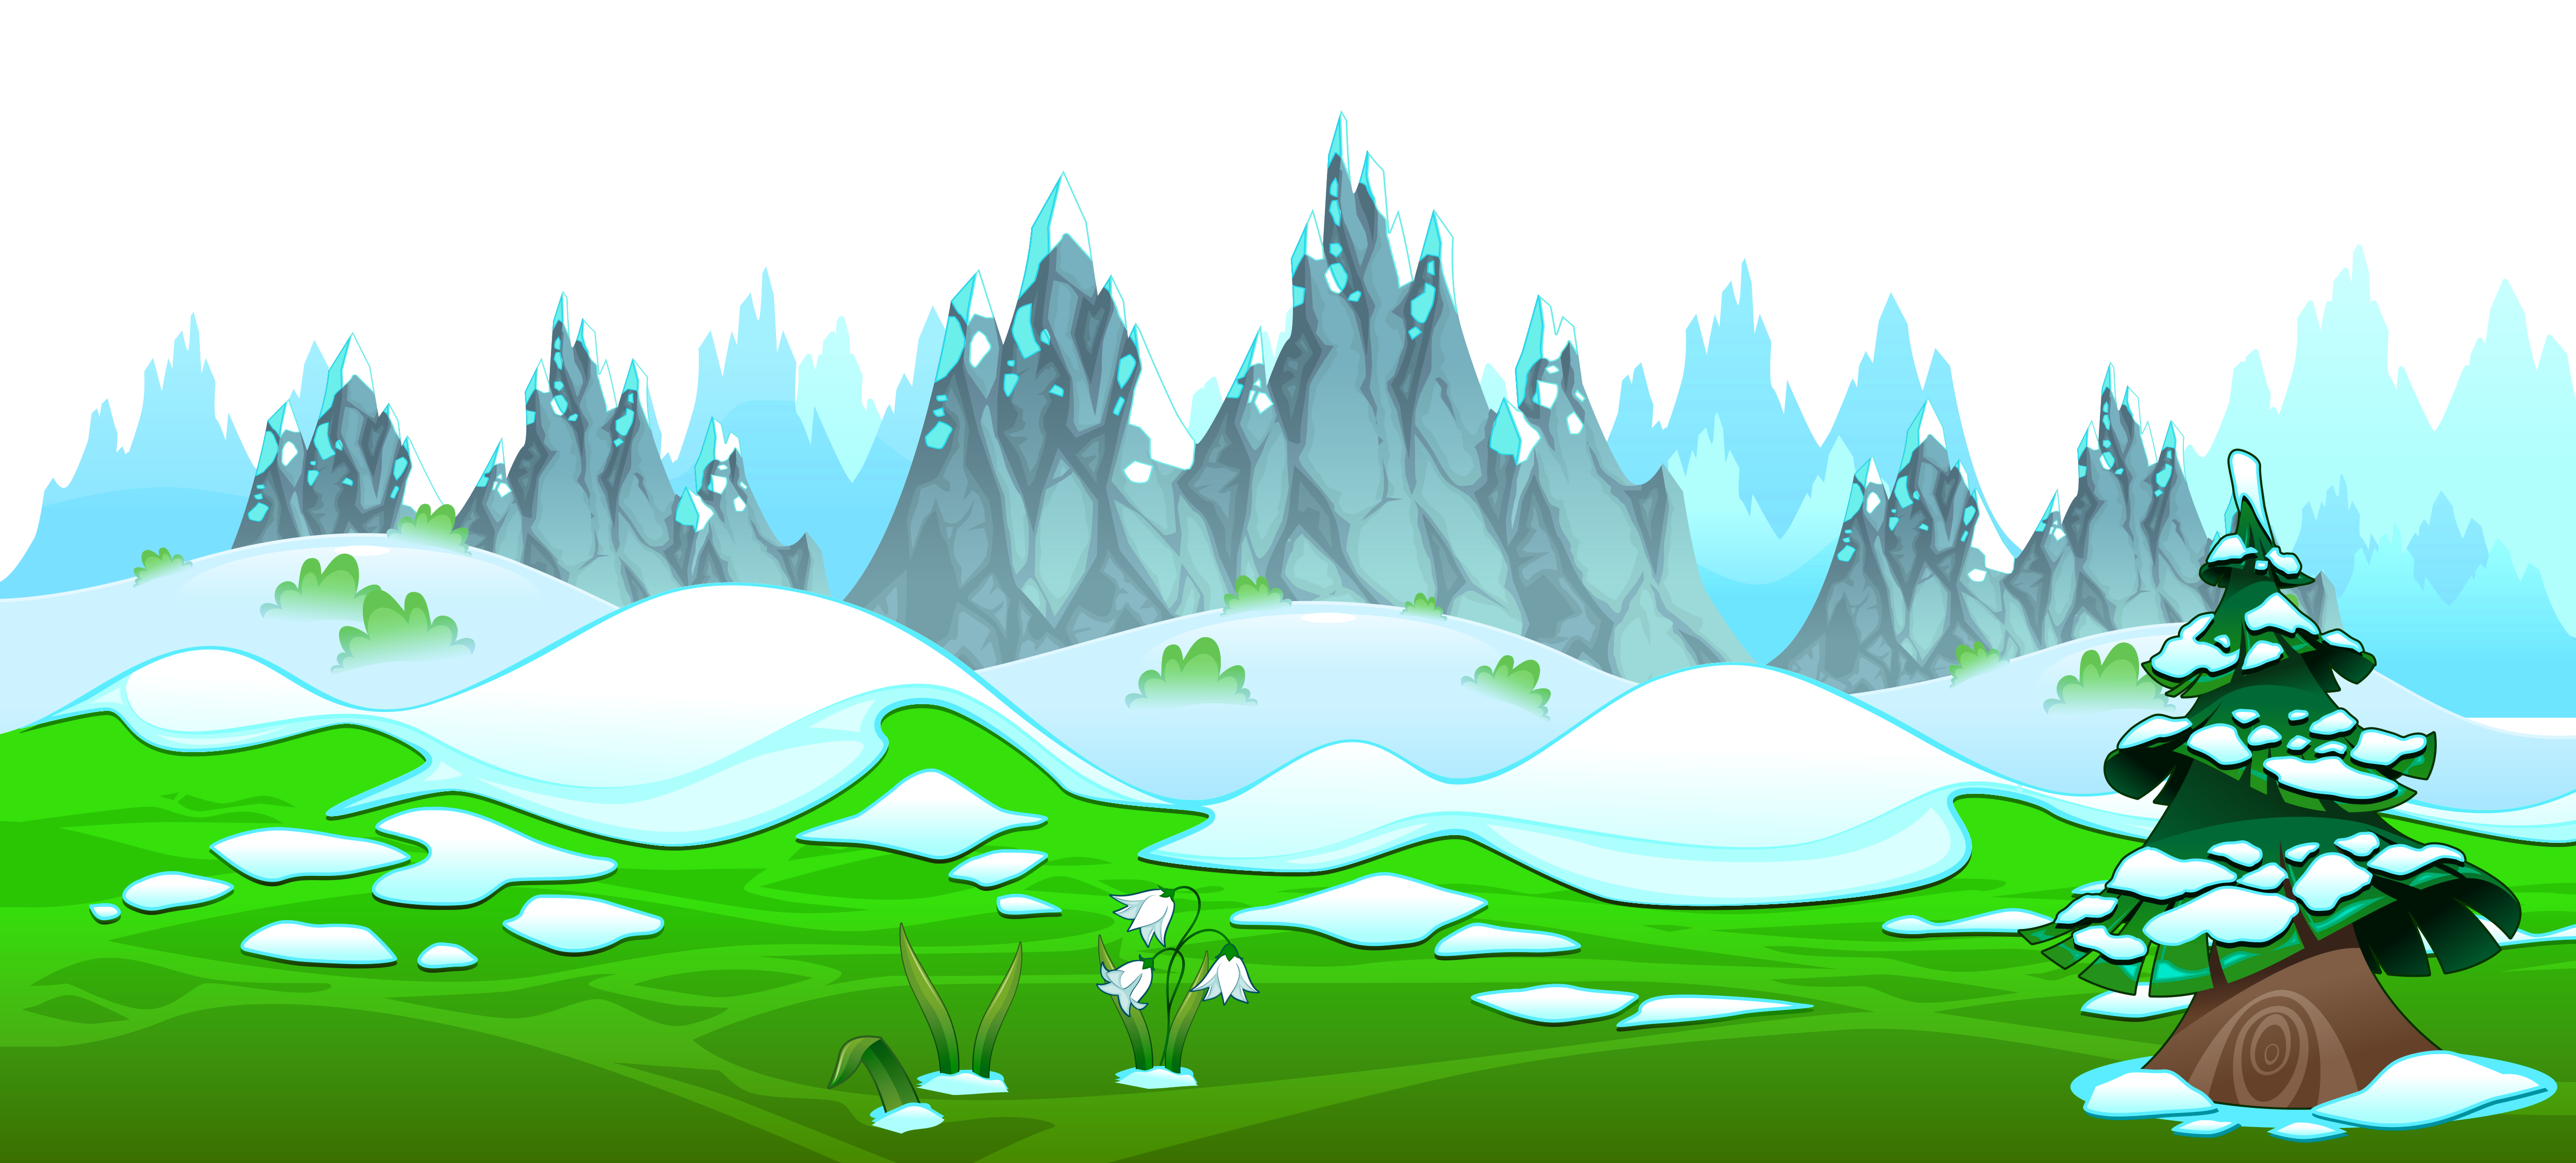 Hill clipart ground. Early spring with icy